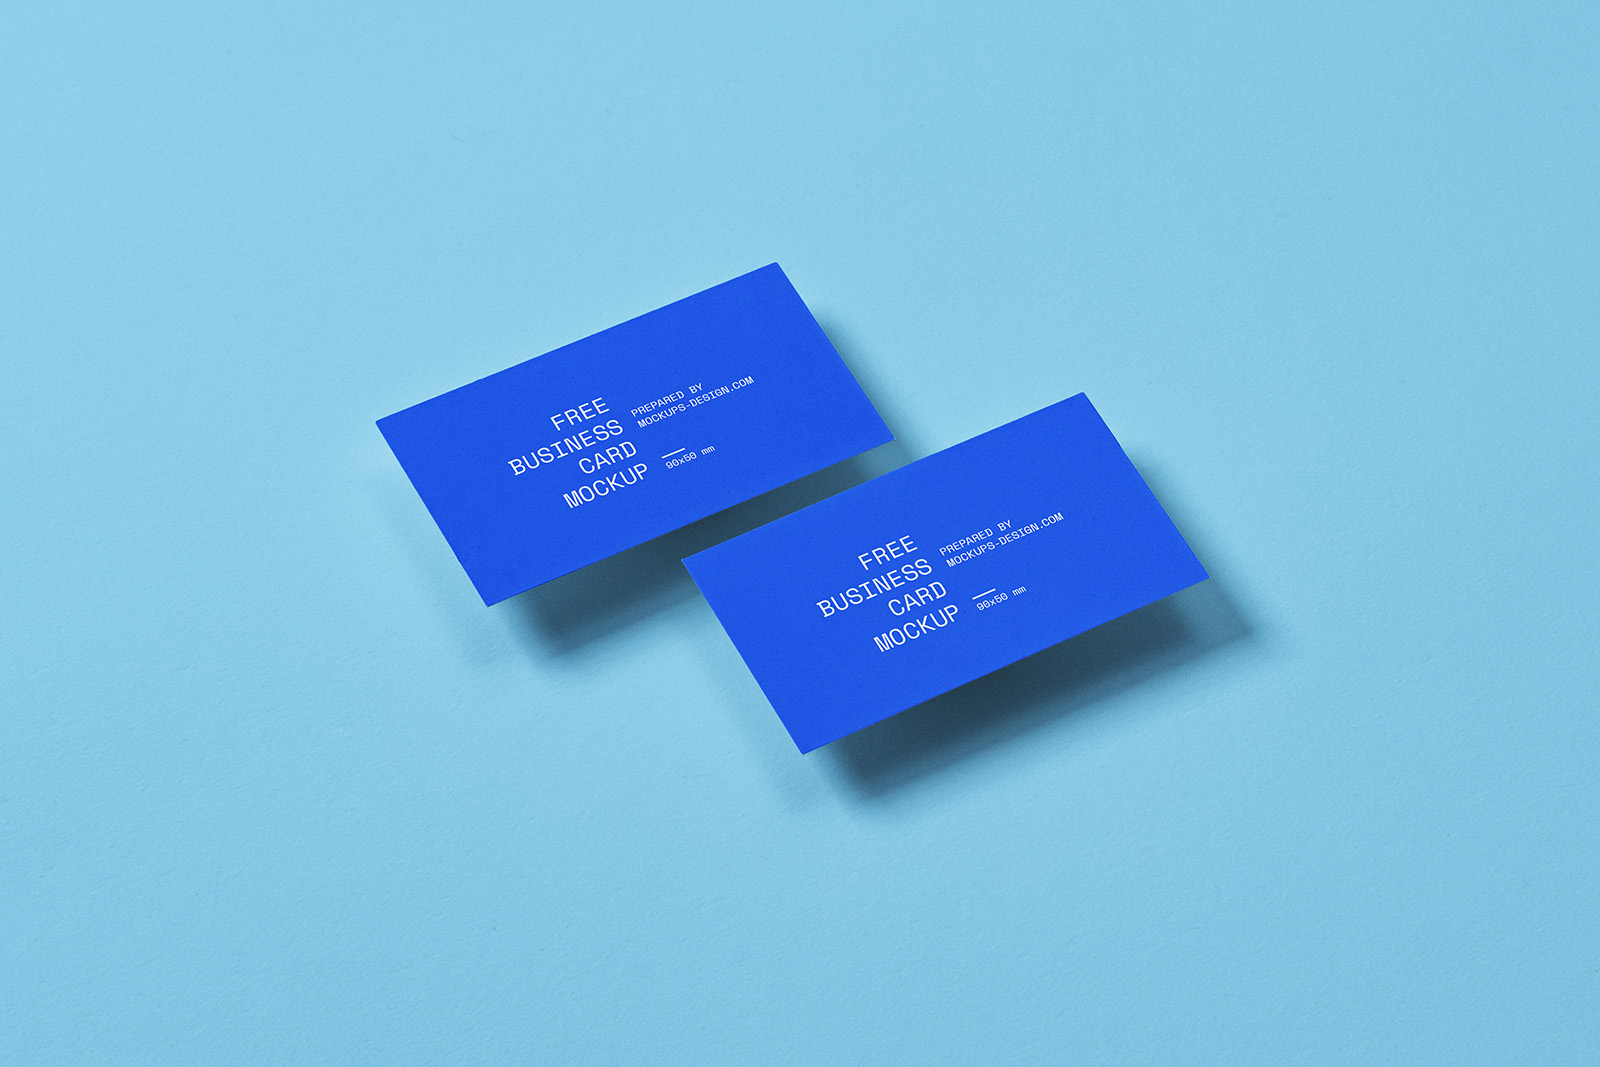 Business card mockup in 90x50mm format